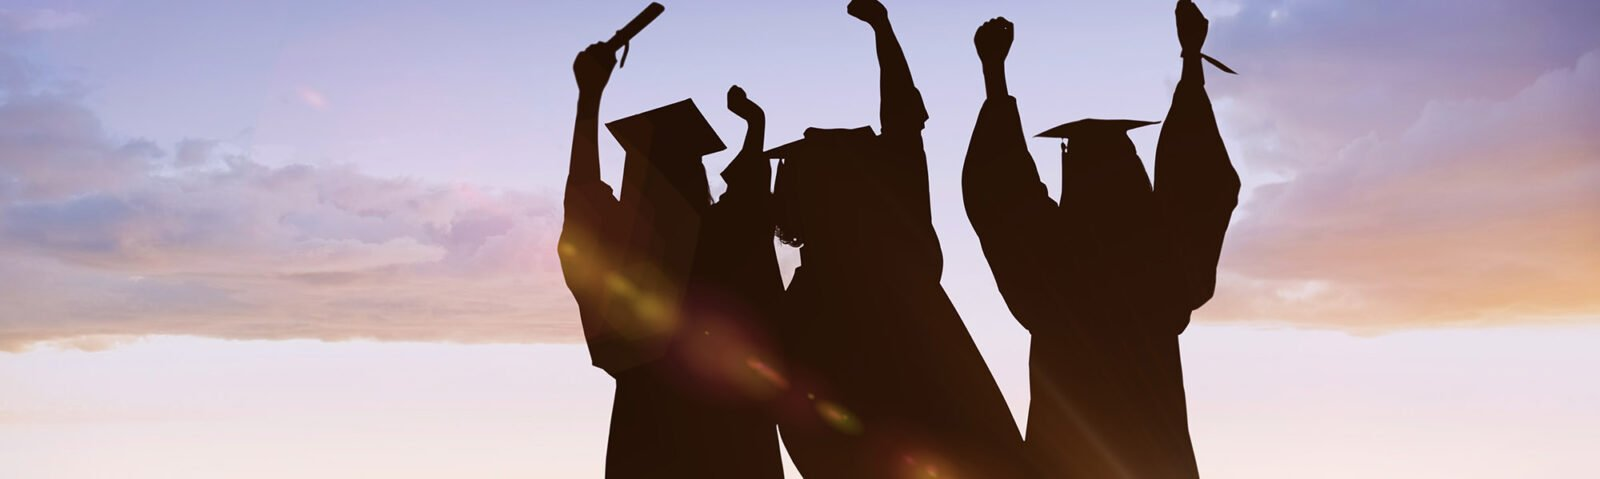 group of graduates in silhouettes with their grad caps on and their hands and diplomas raised